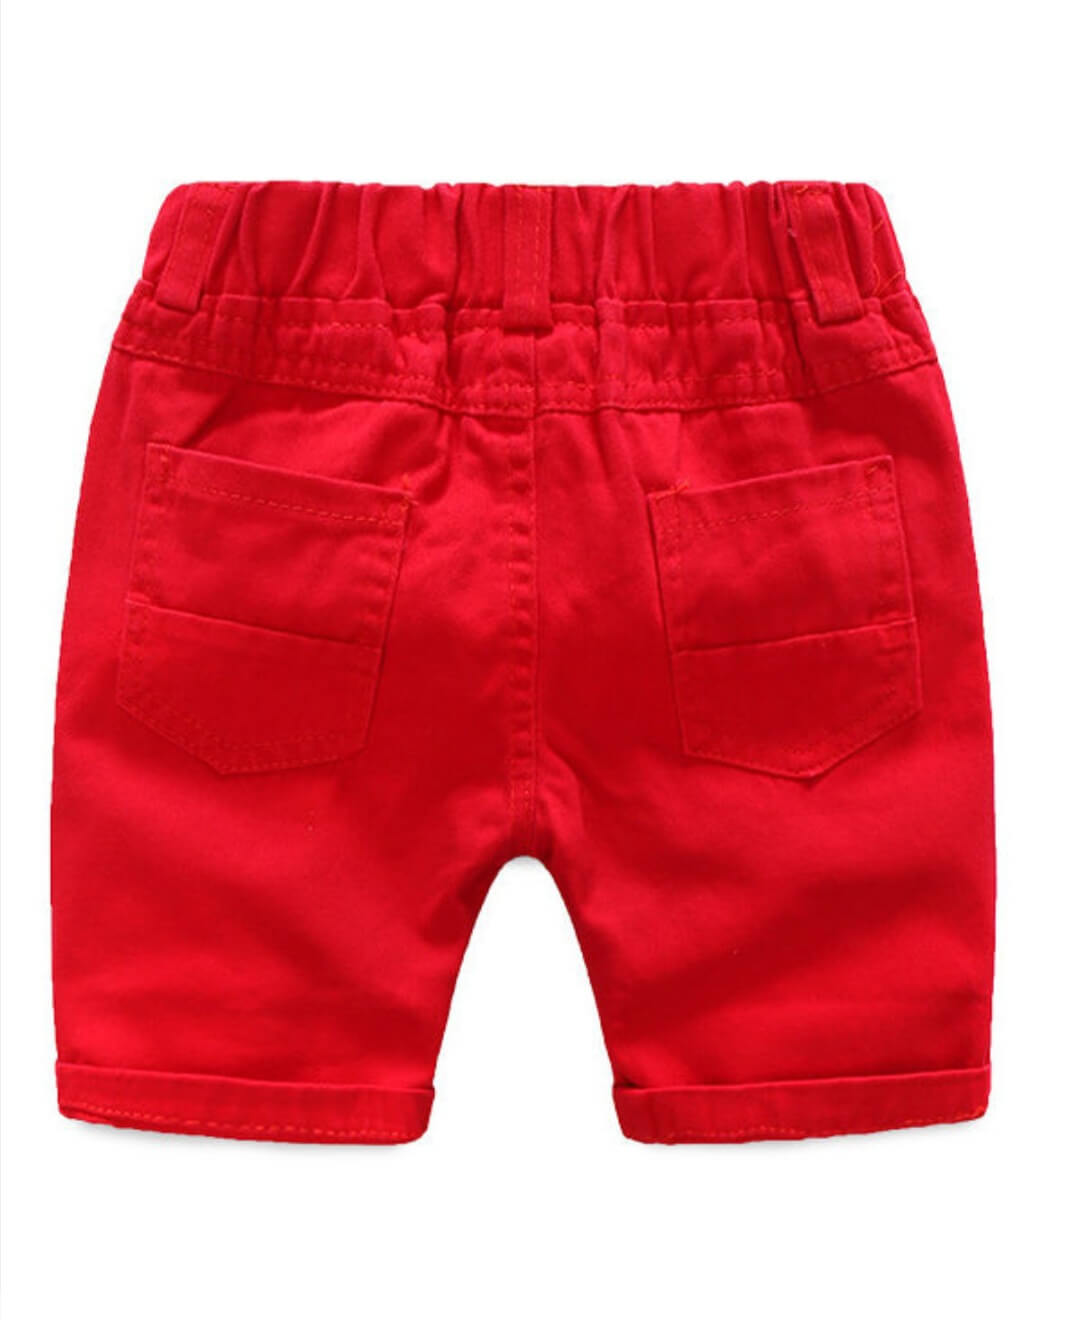 2 piece summer toddler outfit for boys